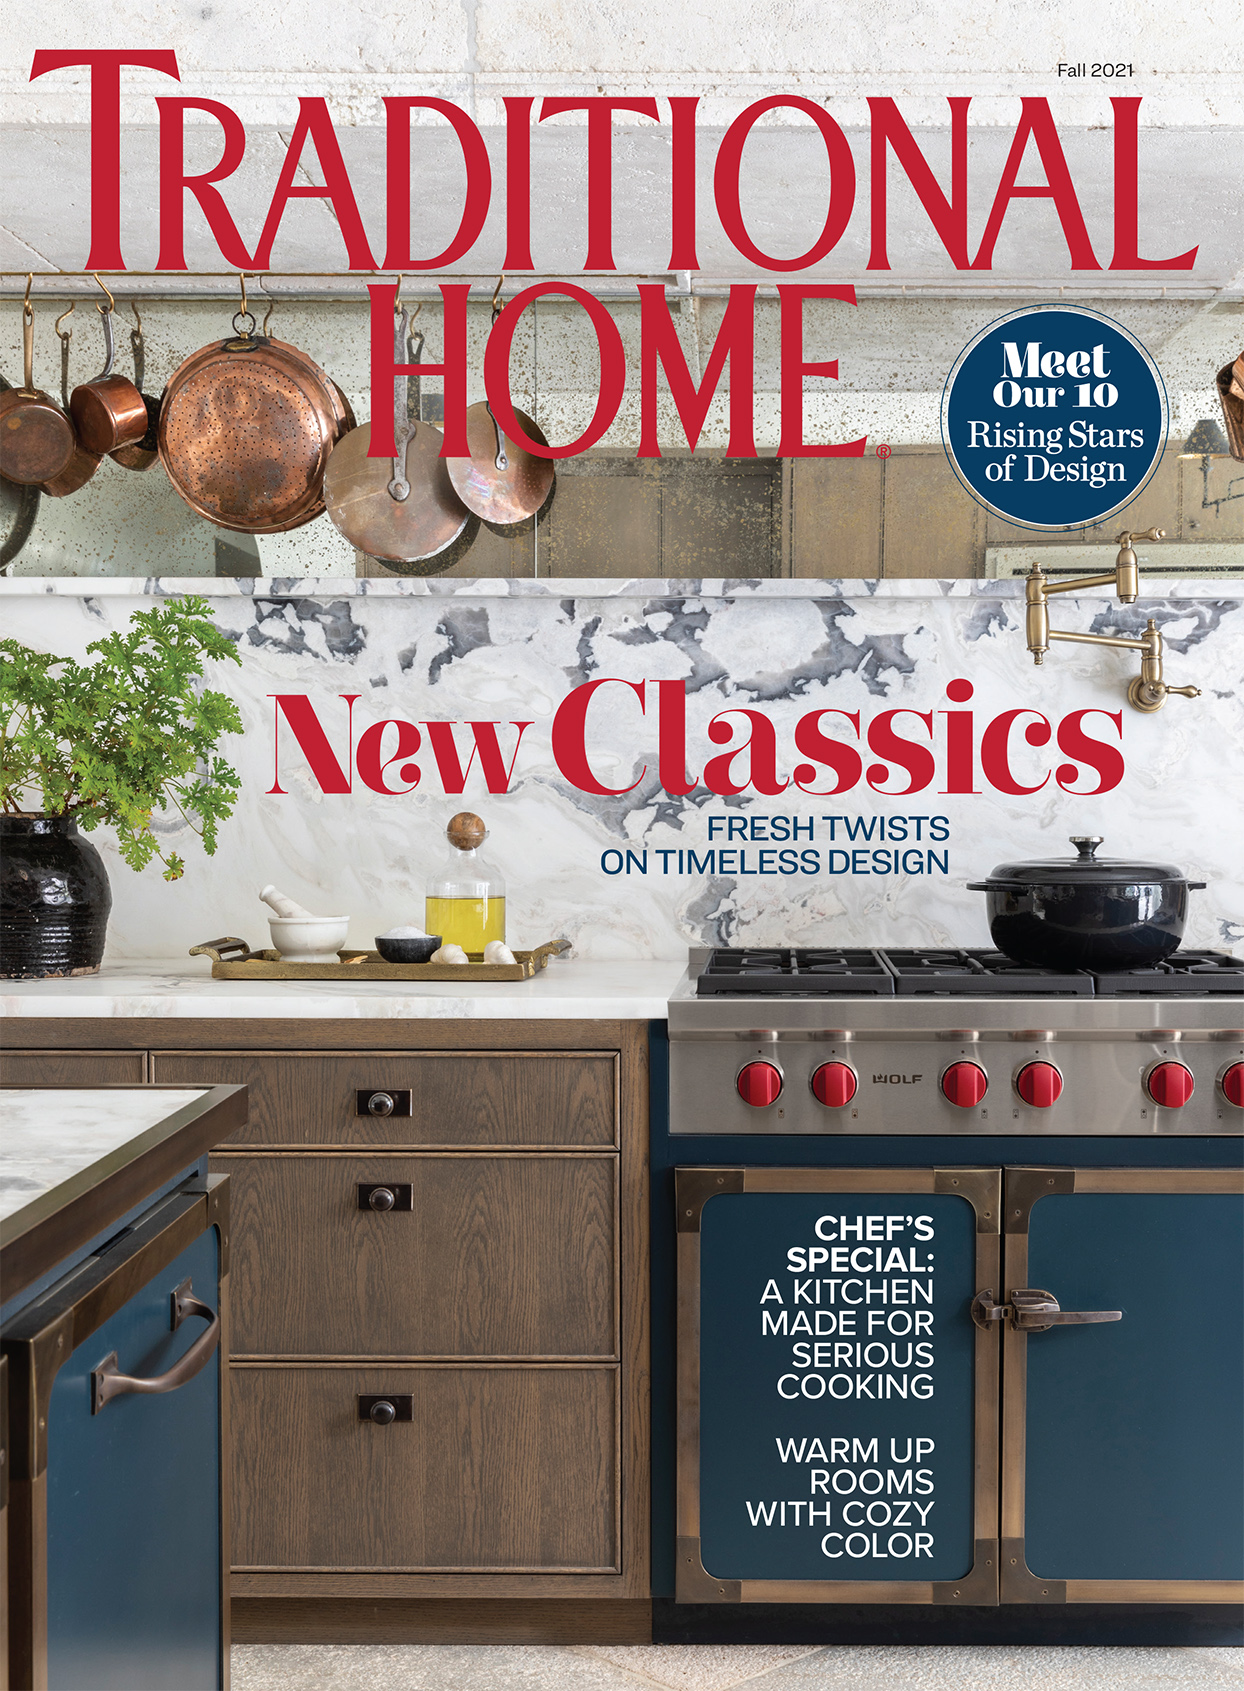 cover of traditional home magazine fall 2021 issue